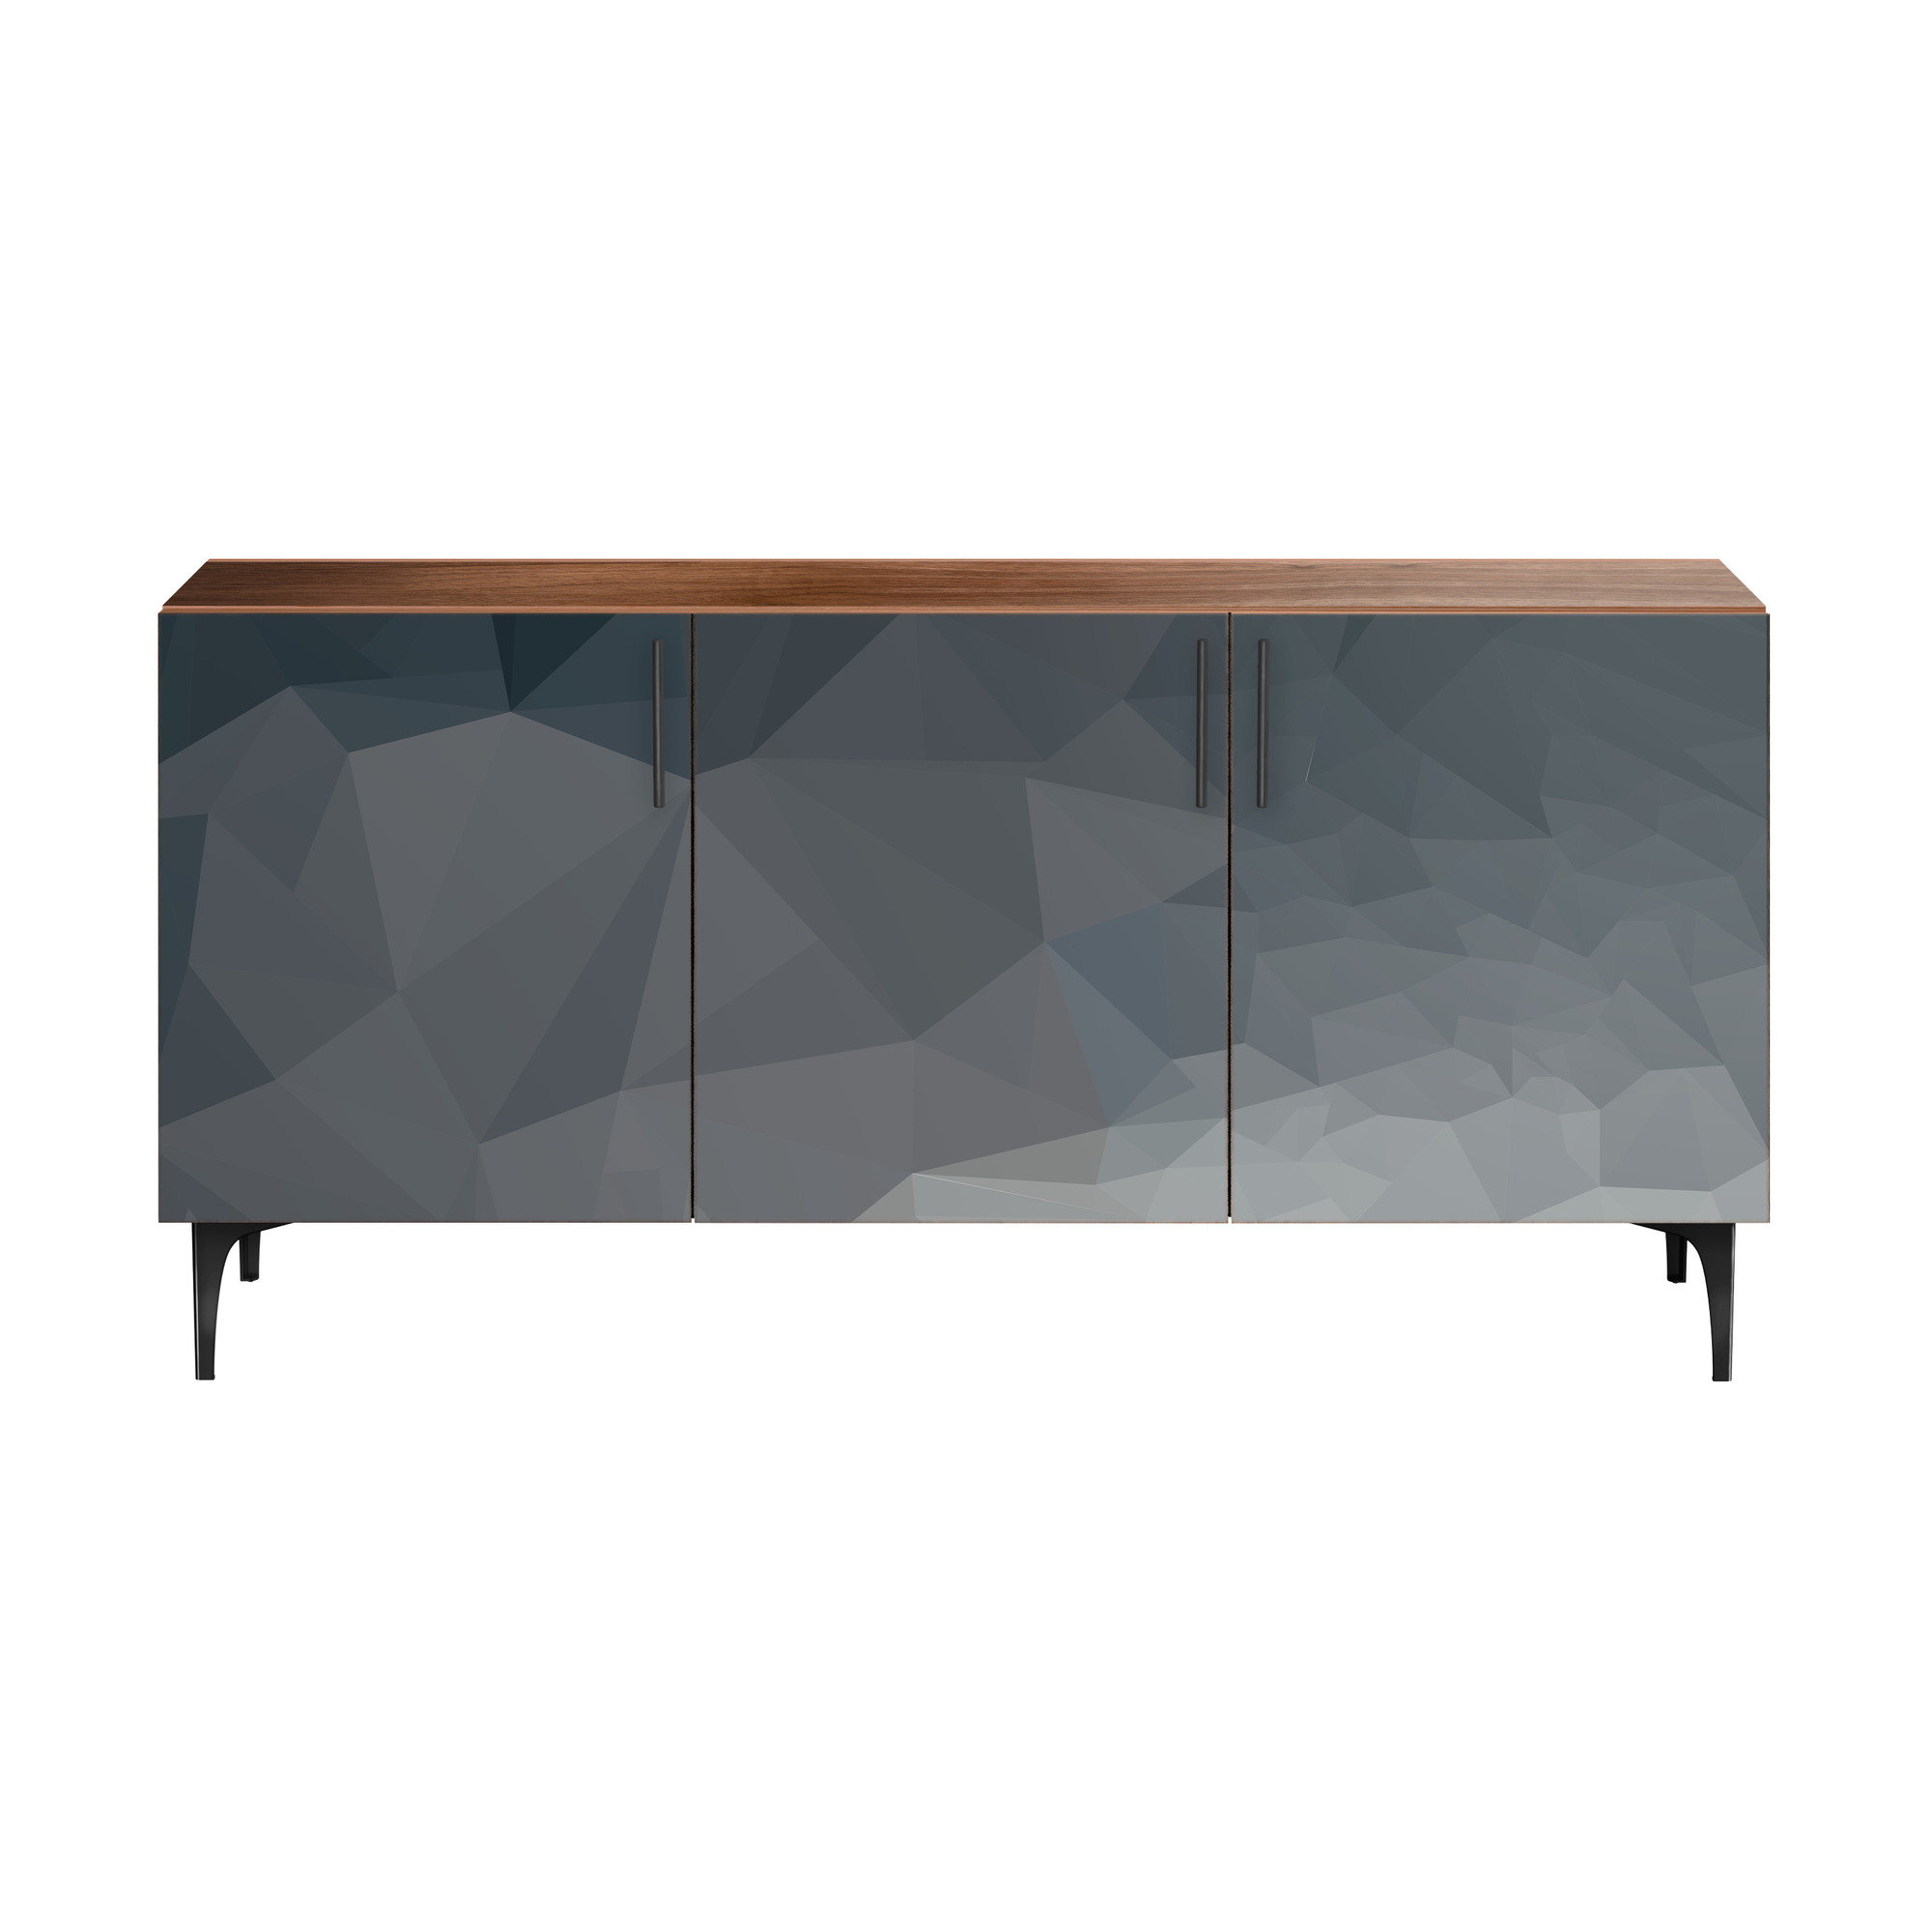 Wayfair With Regard To Most Current Clifton Sideboards (View 20 of 20)